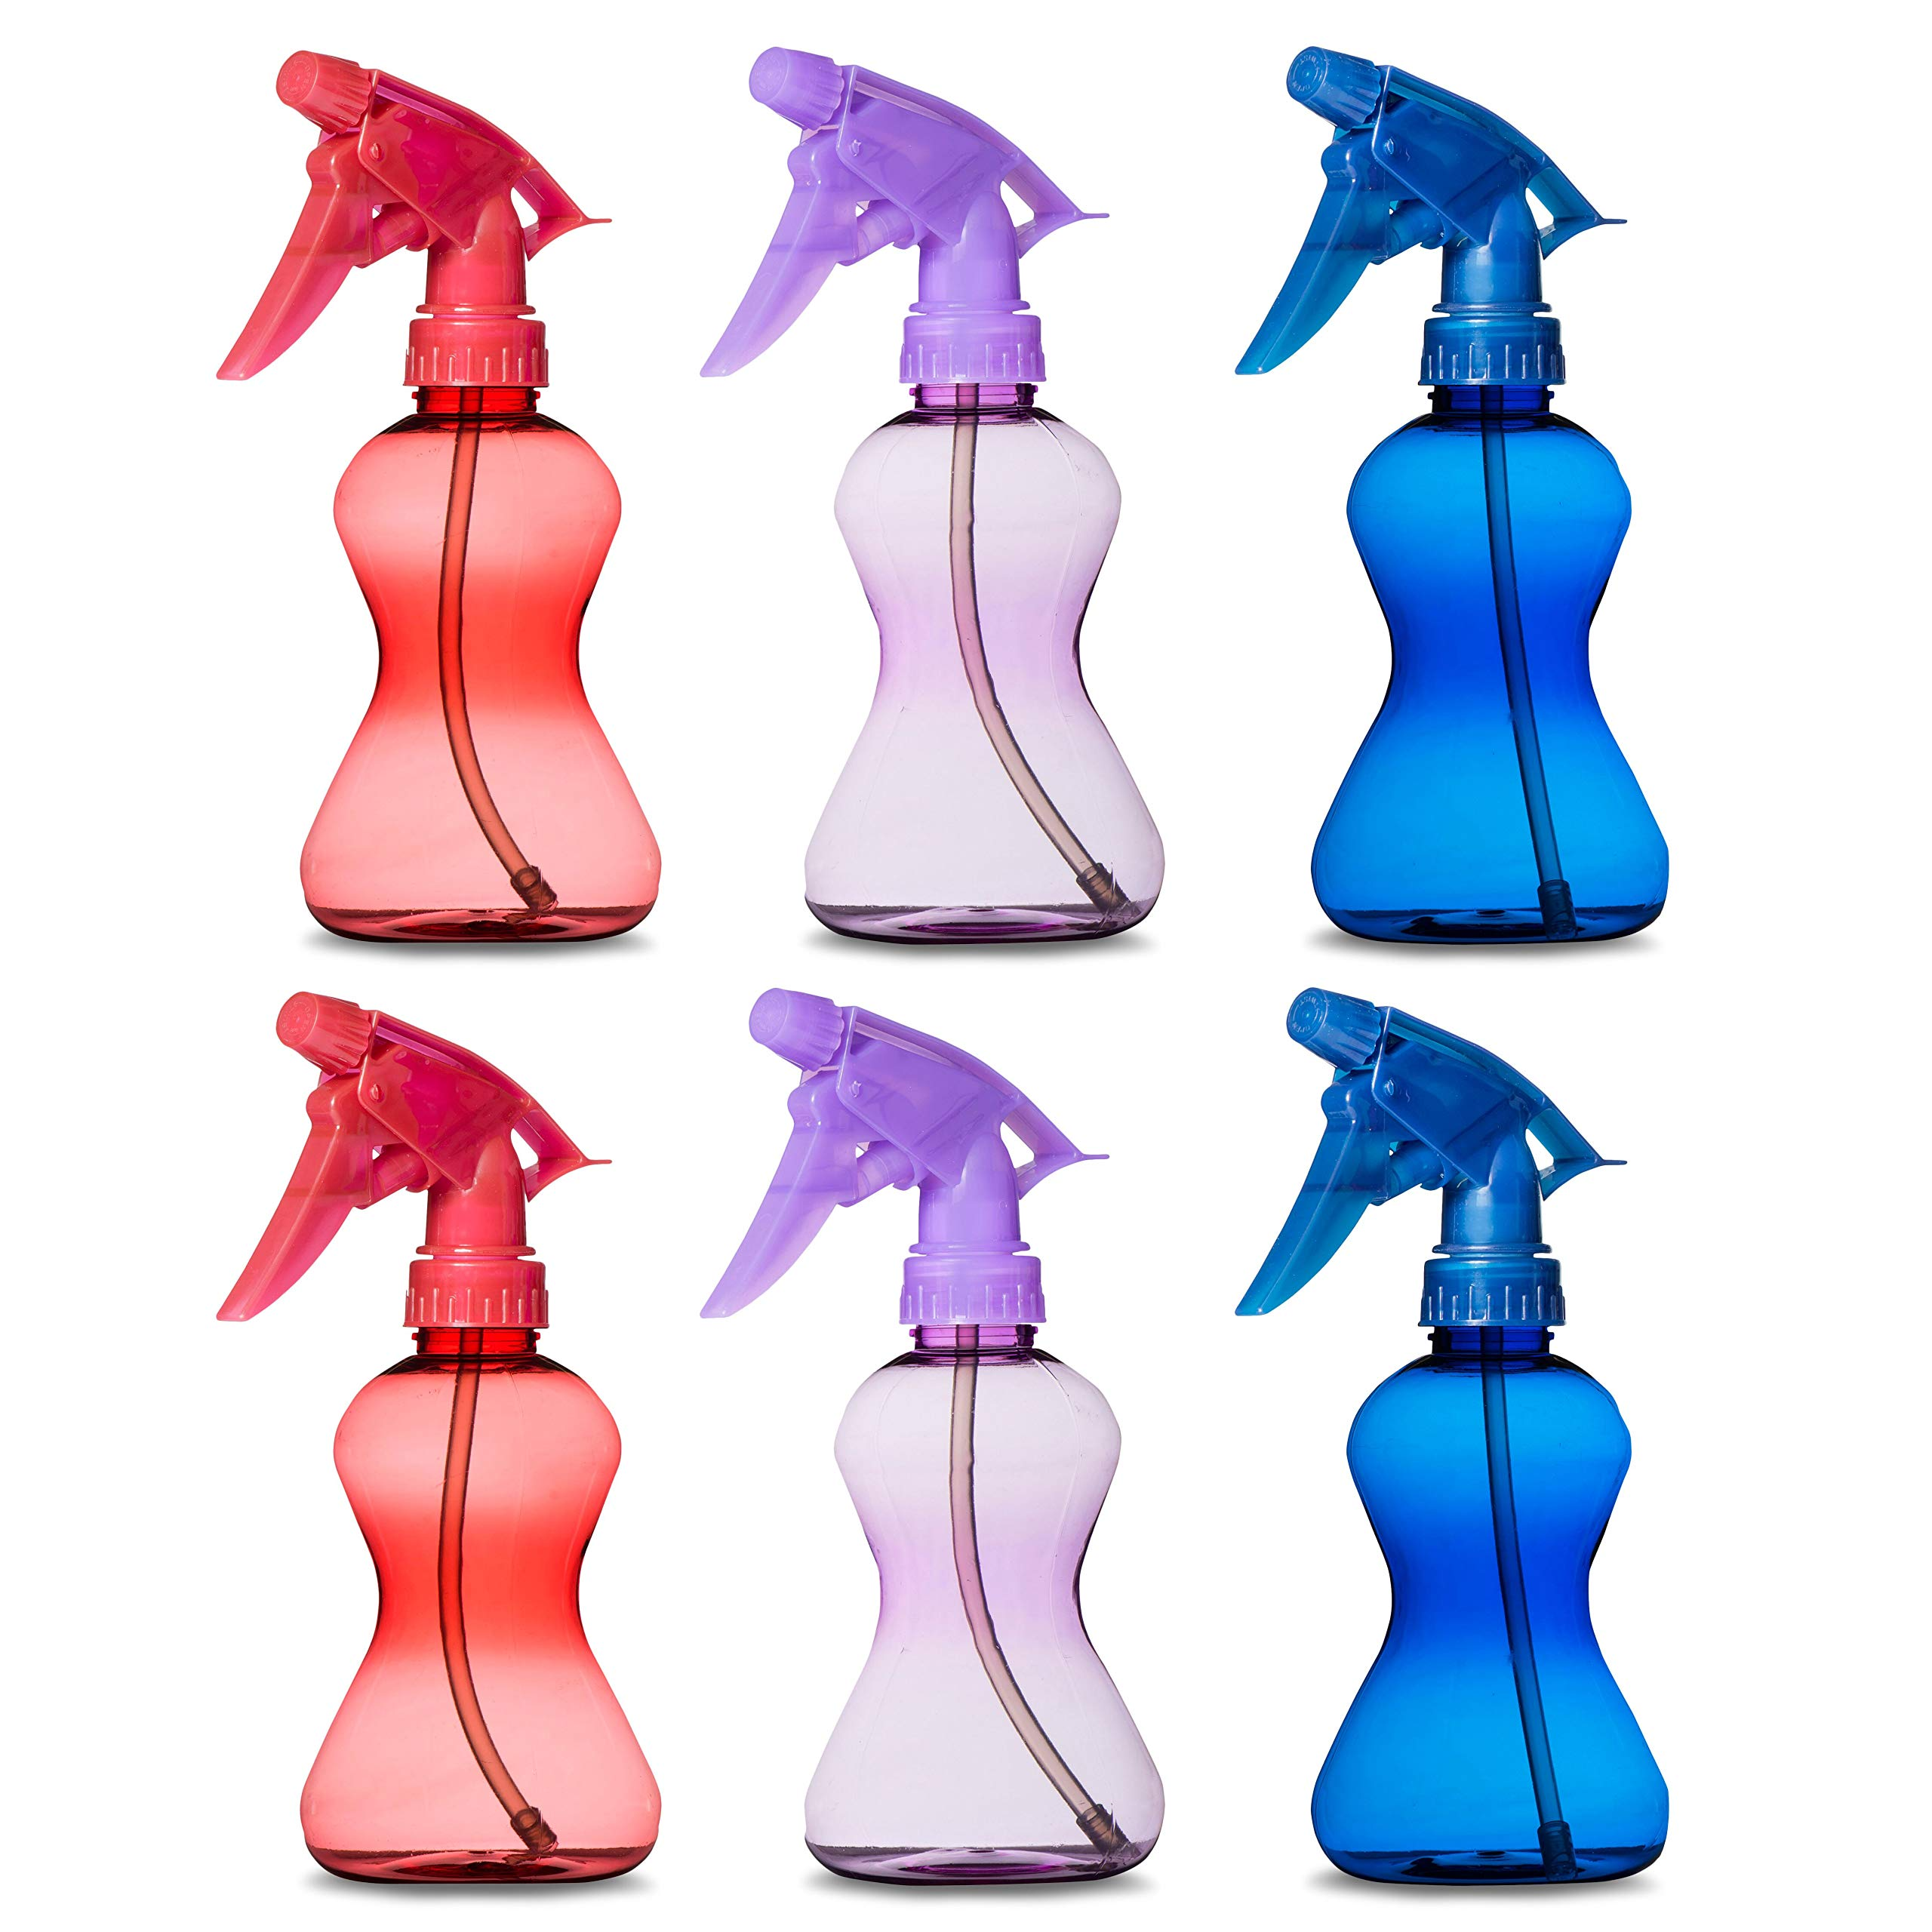 Hammont Plastic Hair Spray Bottles - 10 oz. Plastic Bottle with Adjustable Head Sprayer Value Pack of 6 (2 Blue, 2 red and 2 Purple) by Hammont